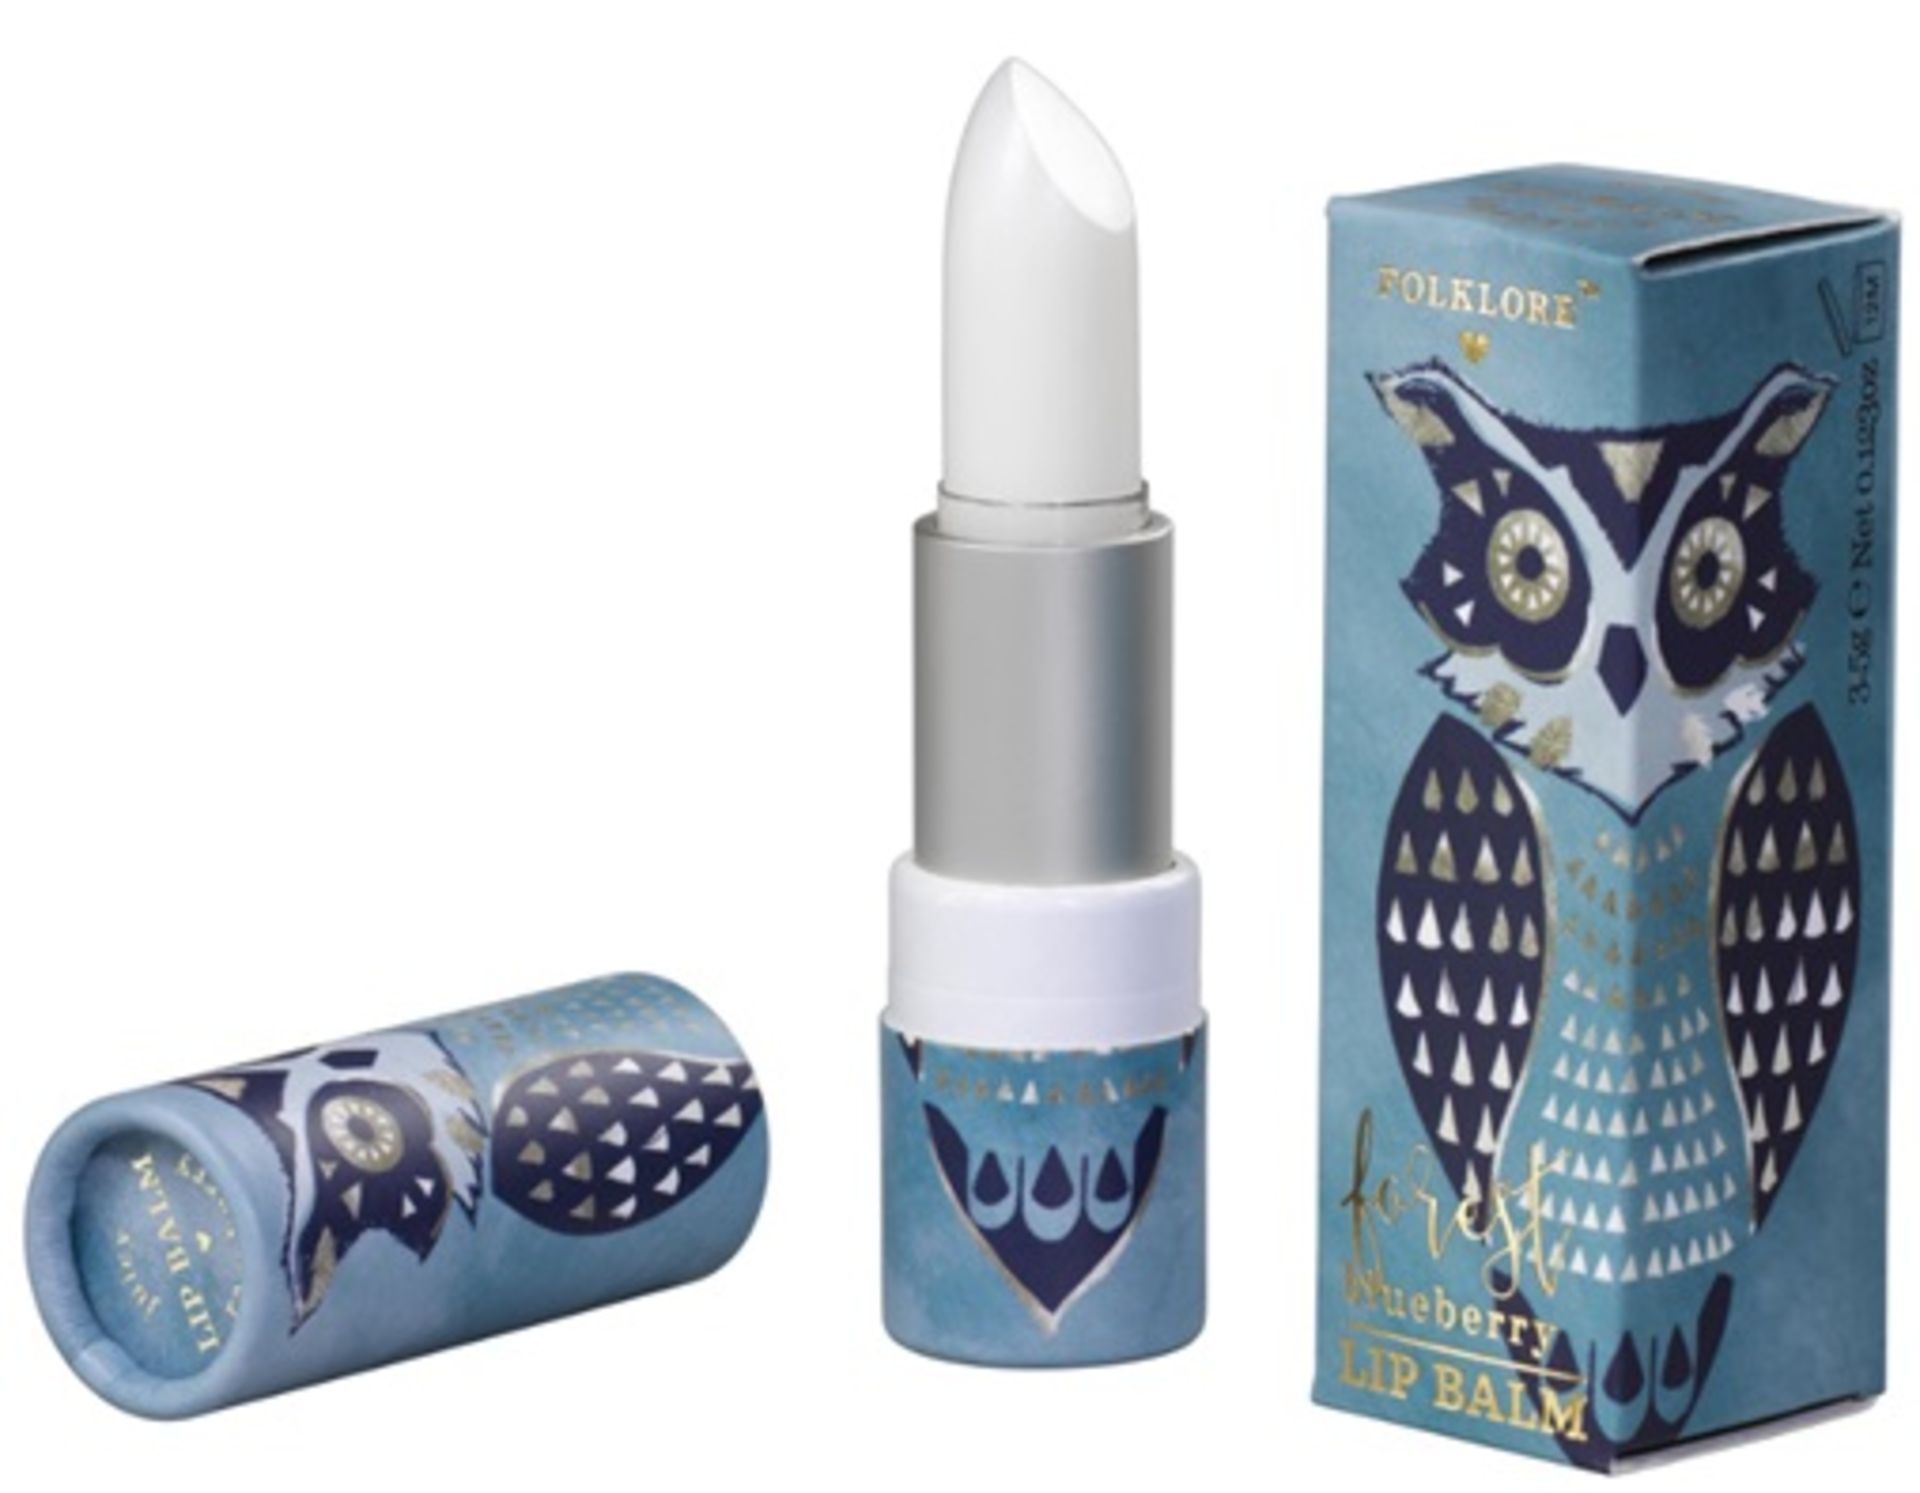 500 x Various Folklore Lip Balm | 3.5g | Total RRP £2,995 - Image 2 of 4